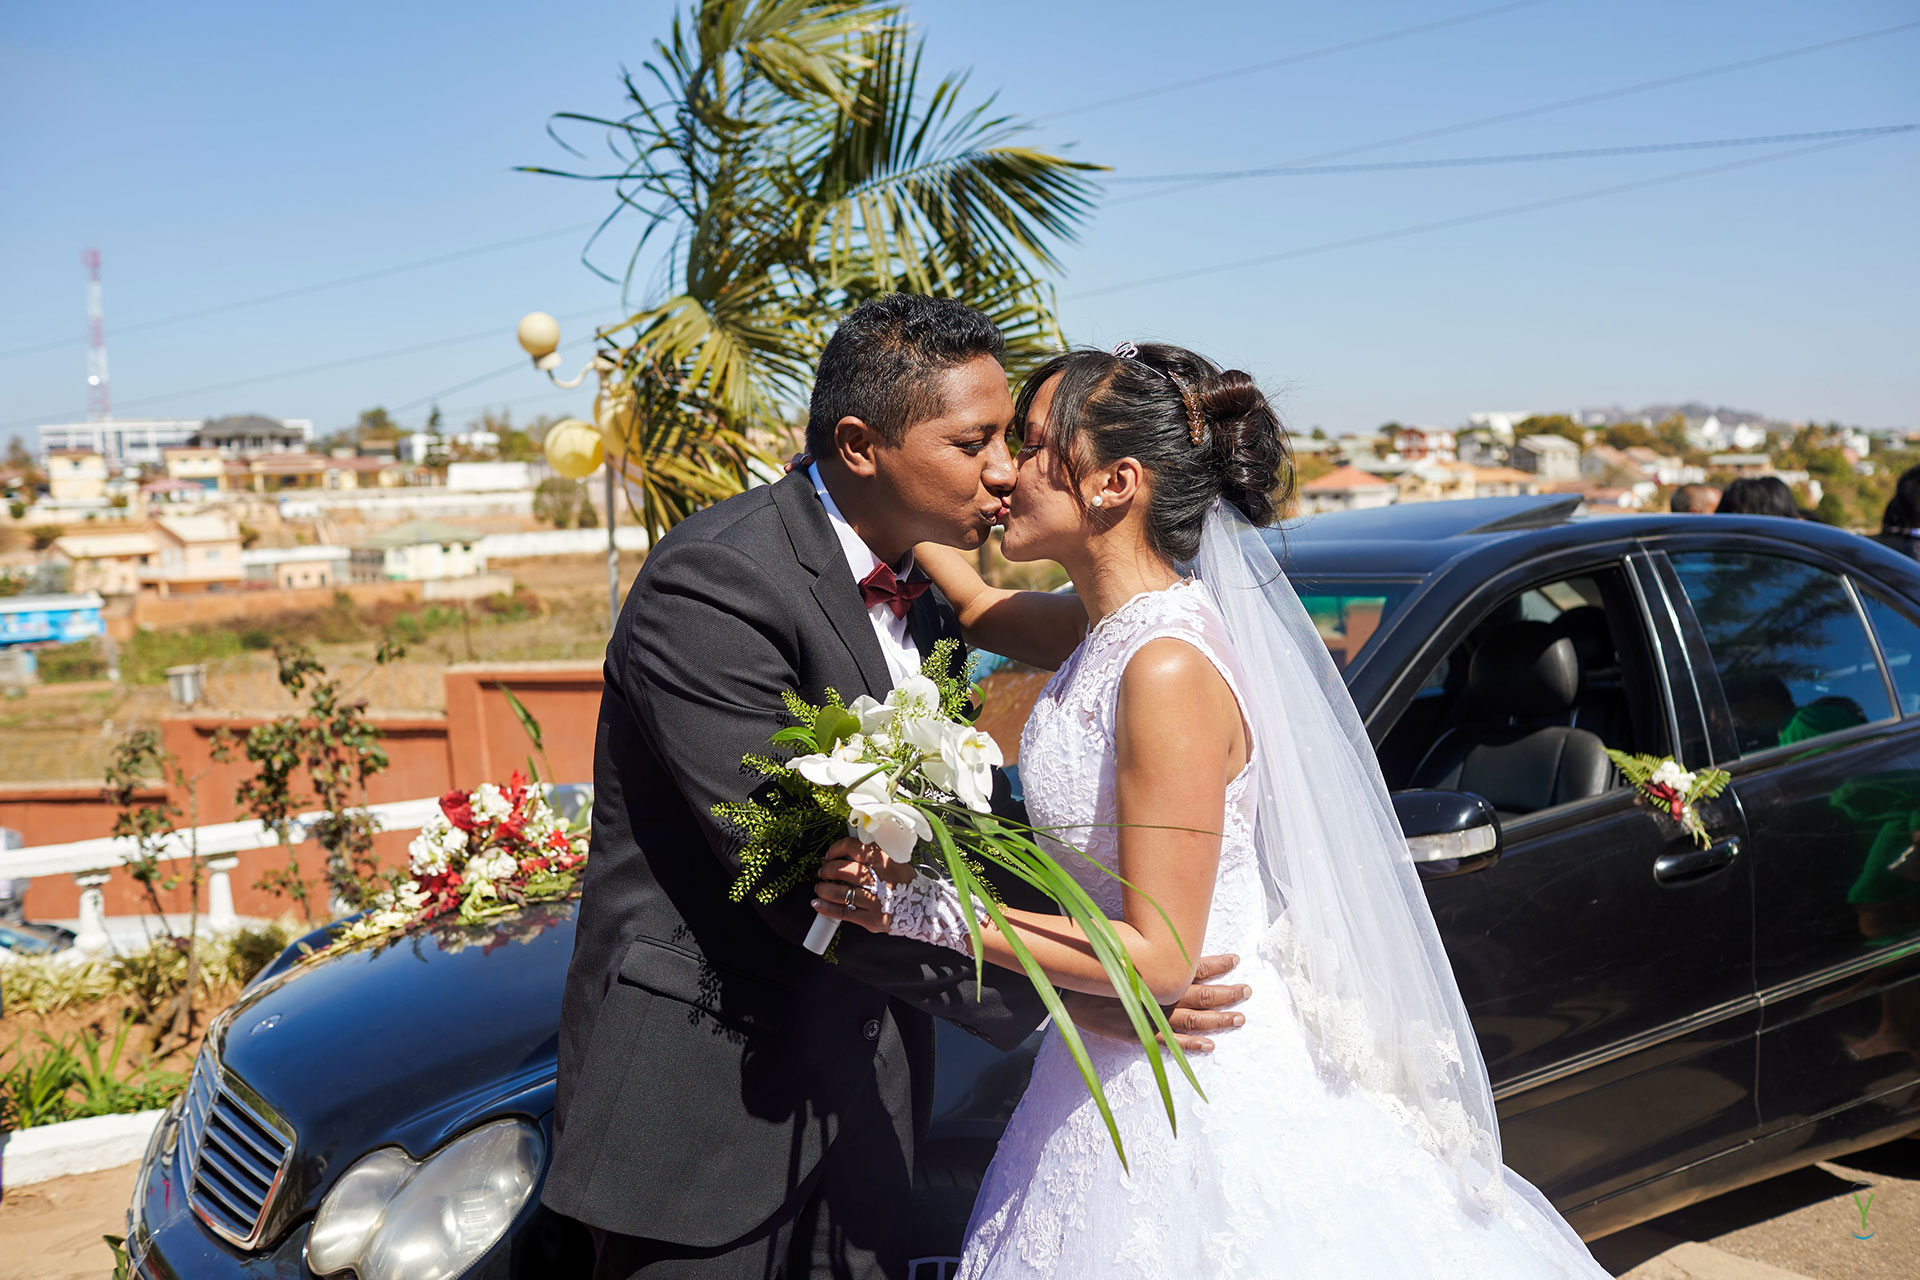 0275_Mariage_Mbola_Hoby_18-09-22